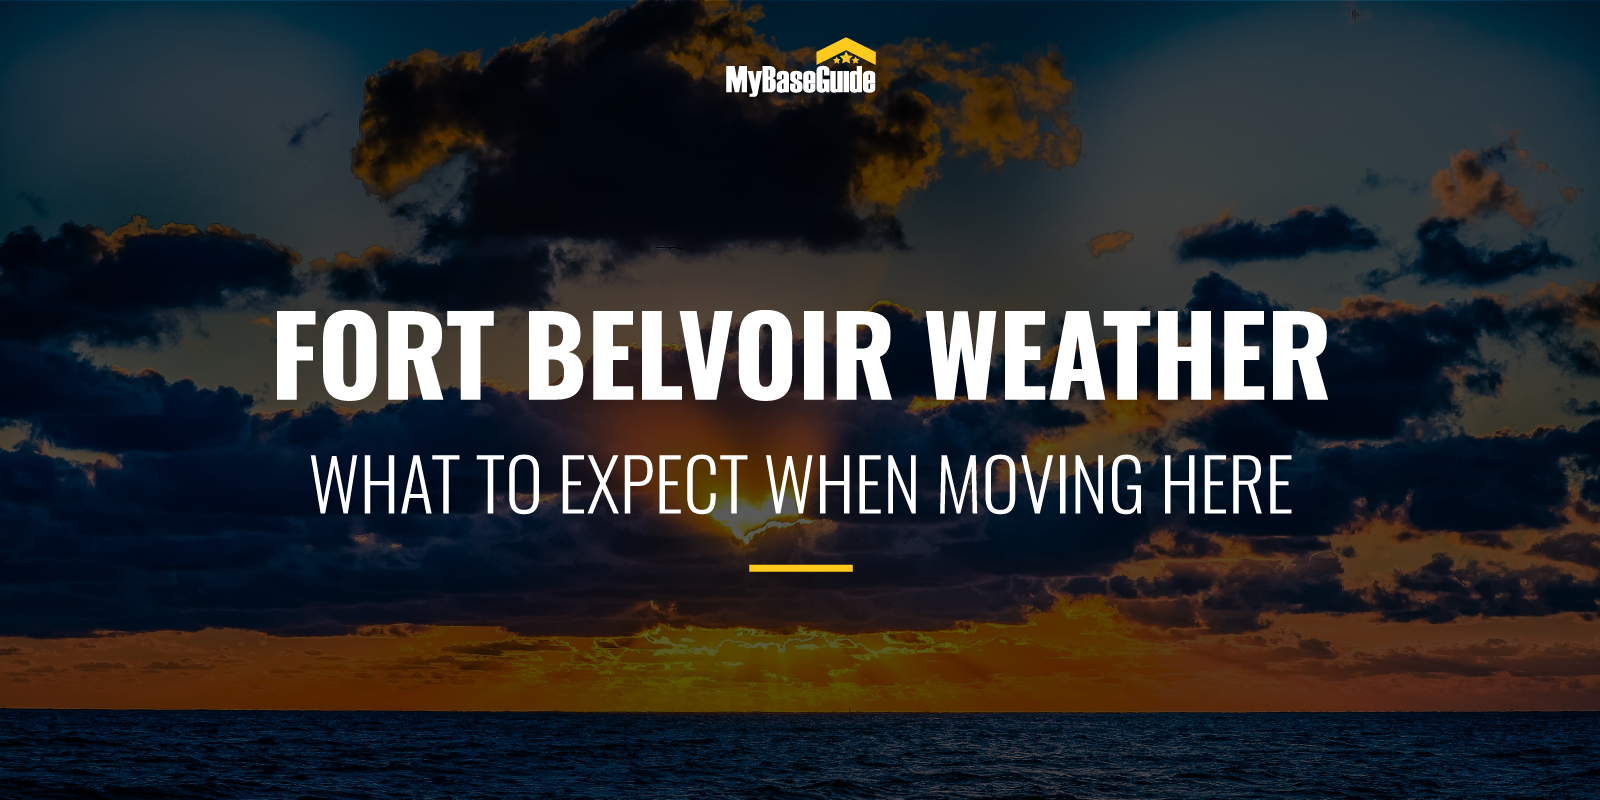 Fort Belvoir Weather: What To Expect When Moving Here